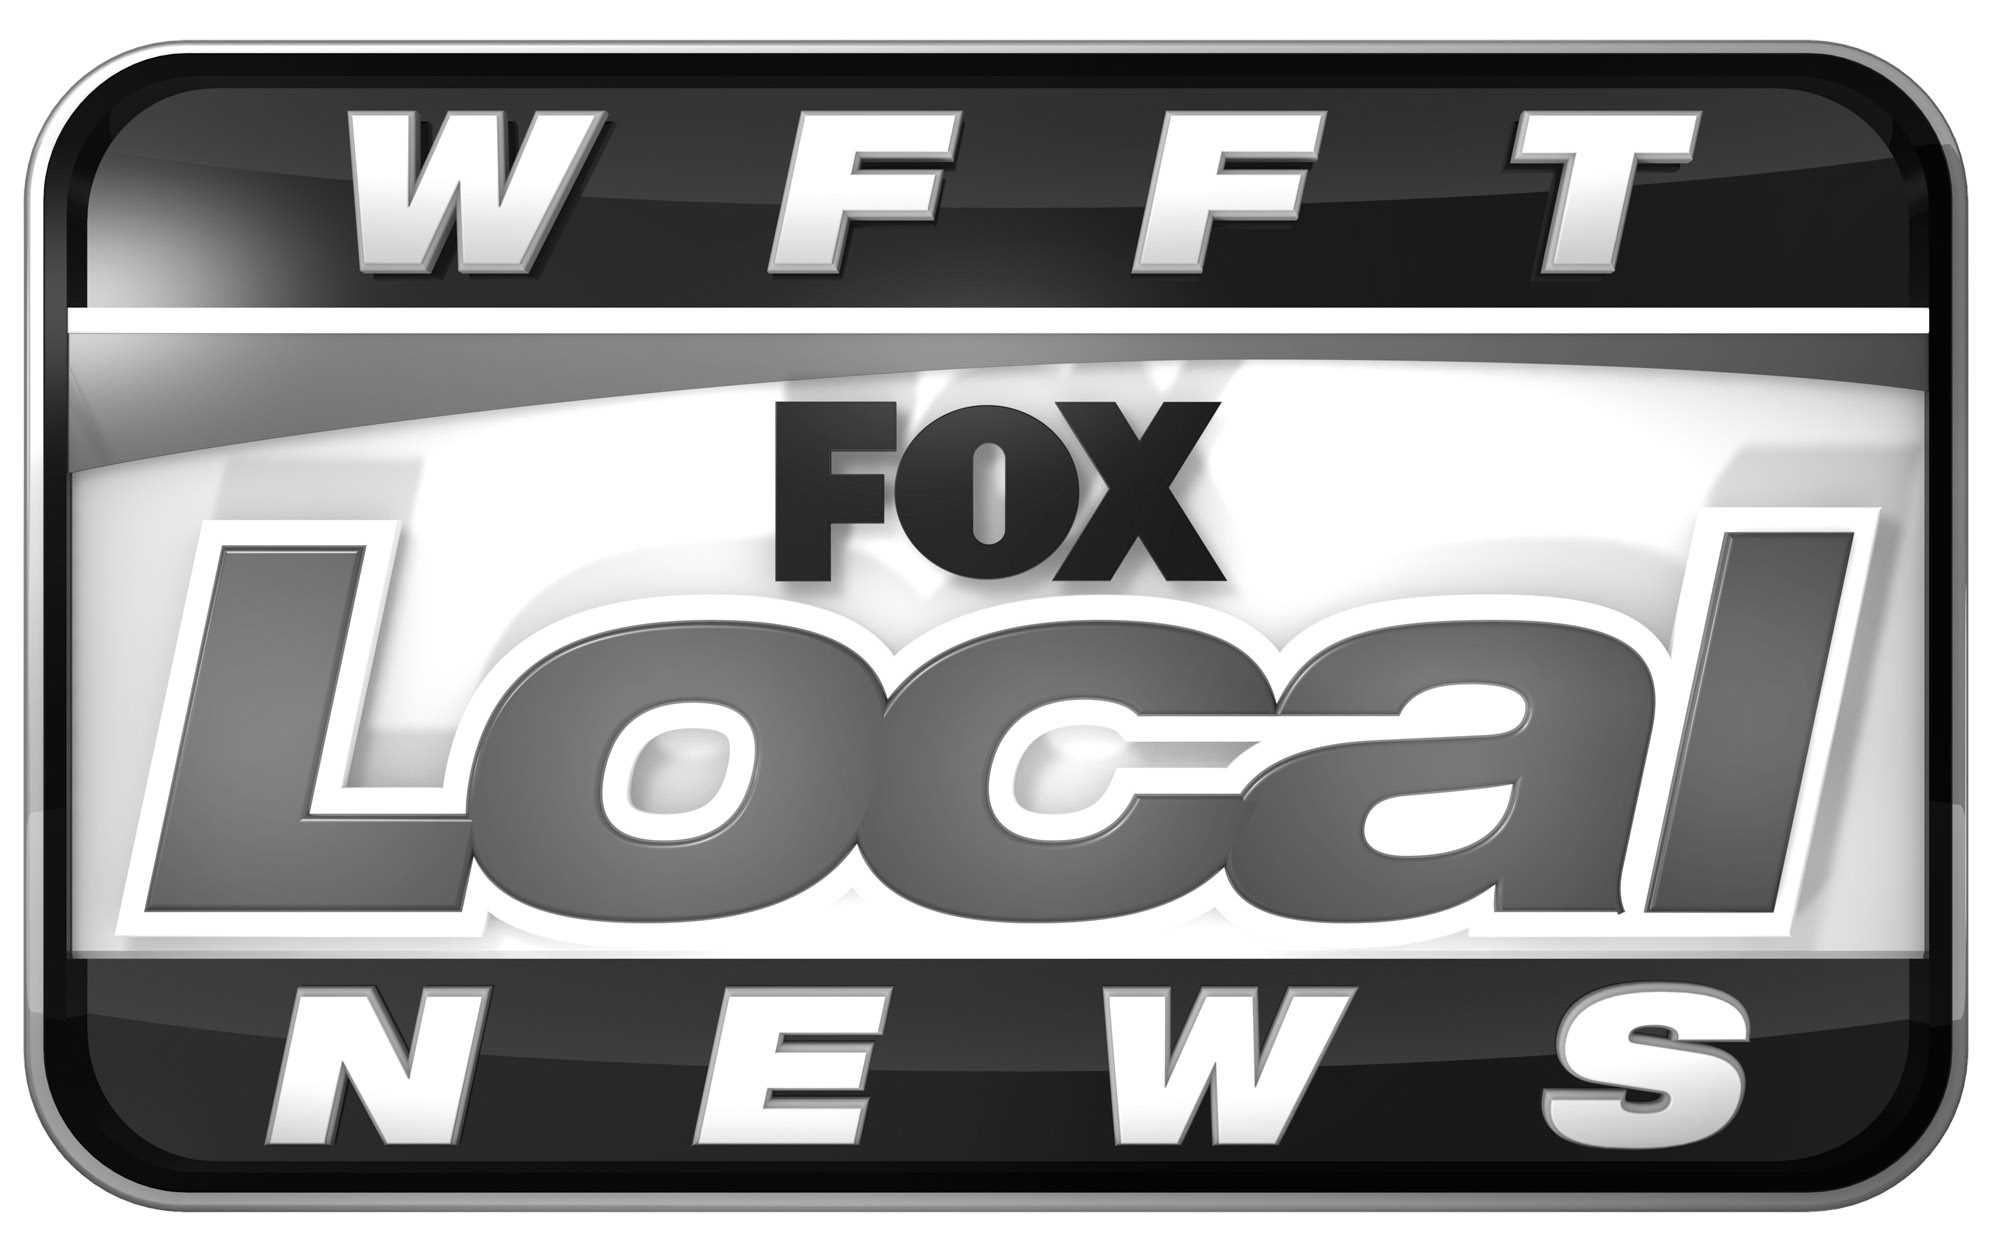 WFFT Fox Local